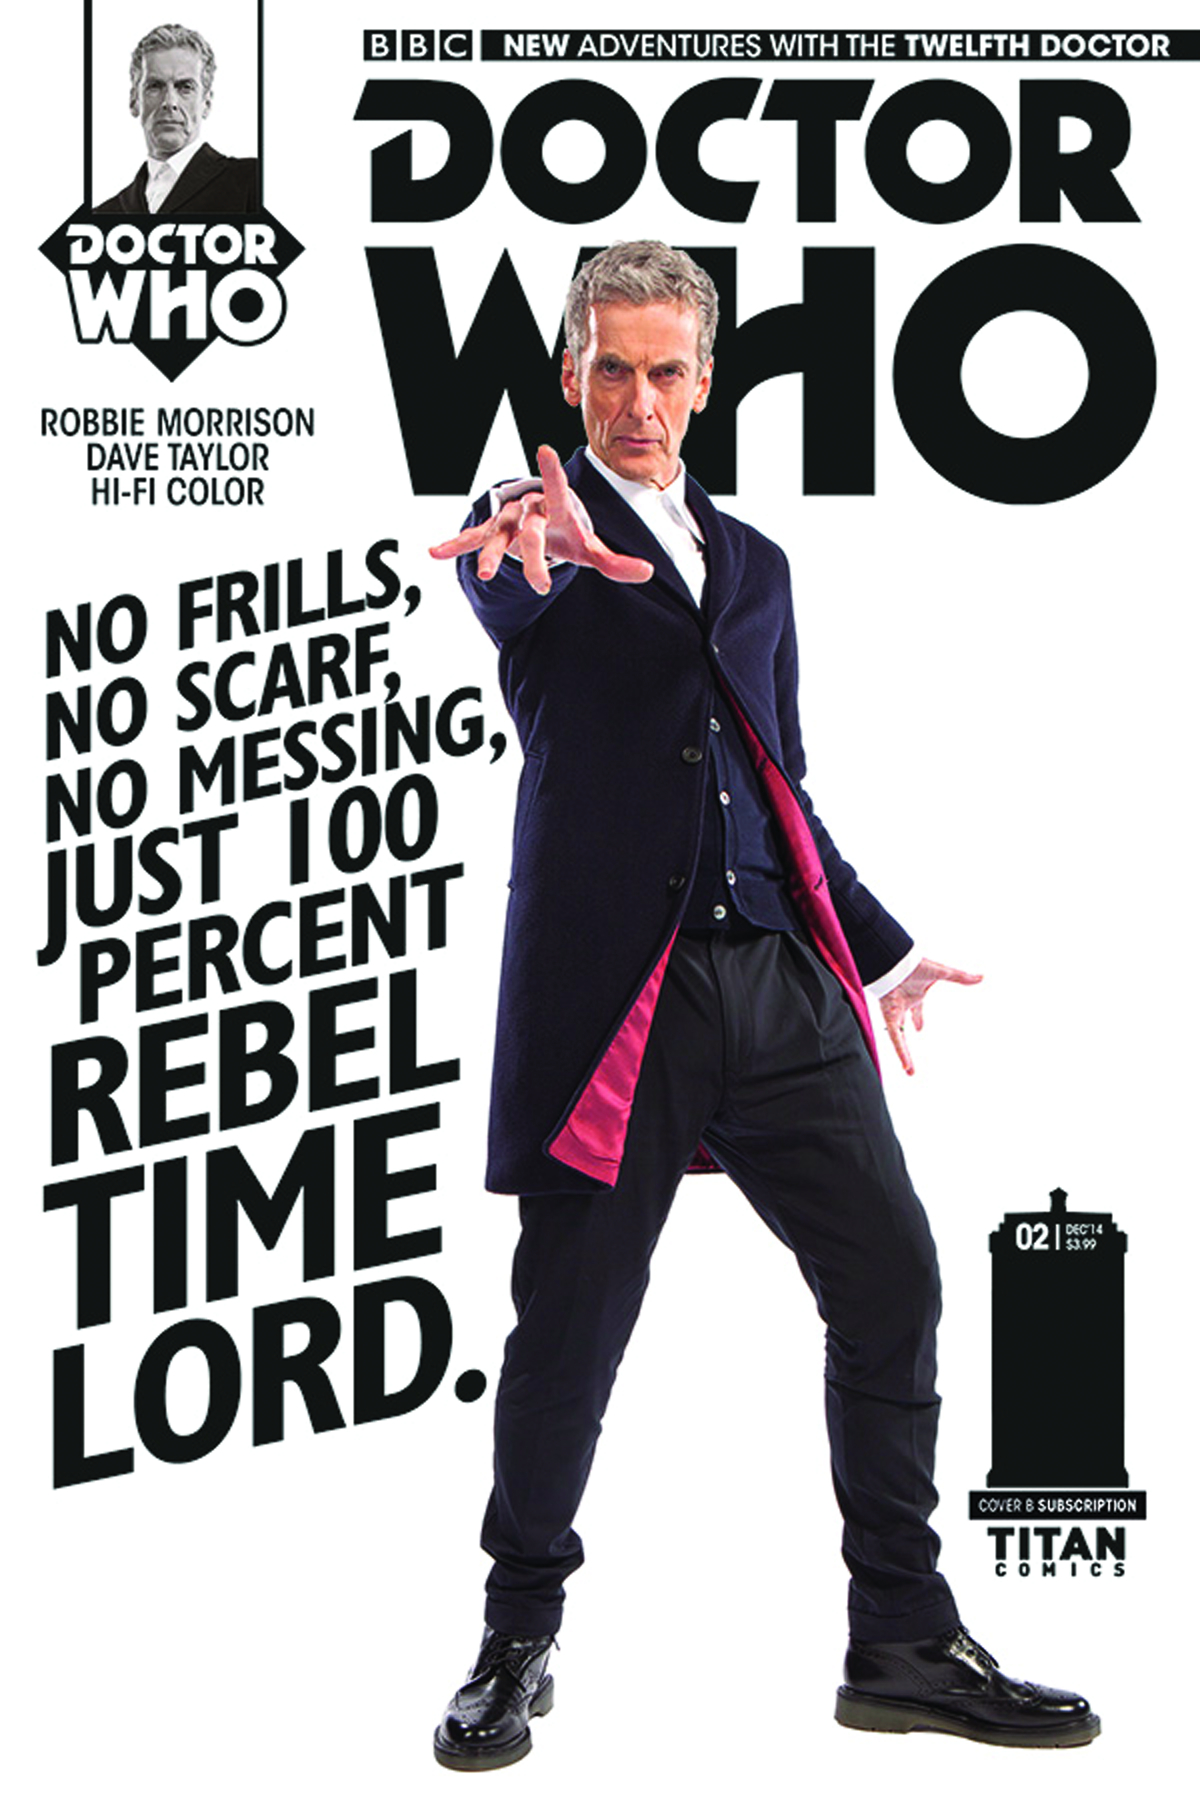 DOCTOR WHO 12TH #1 SUBSCRIPTION PHOTO